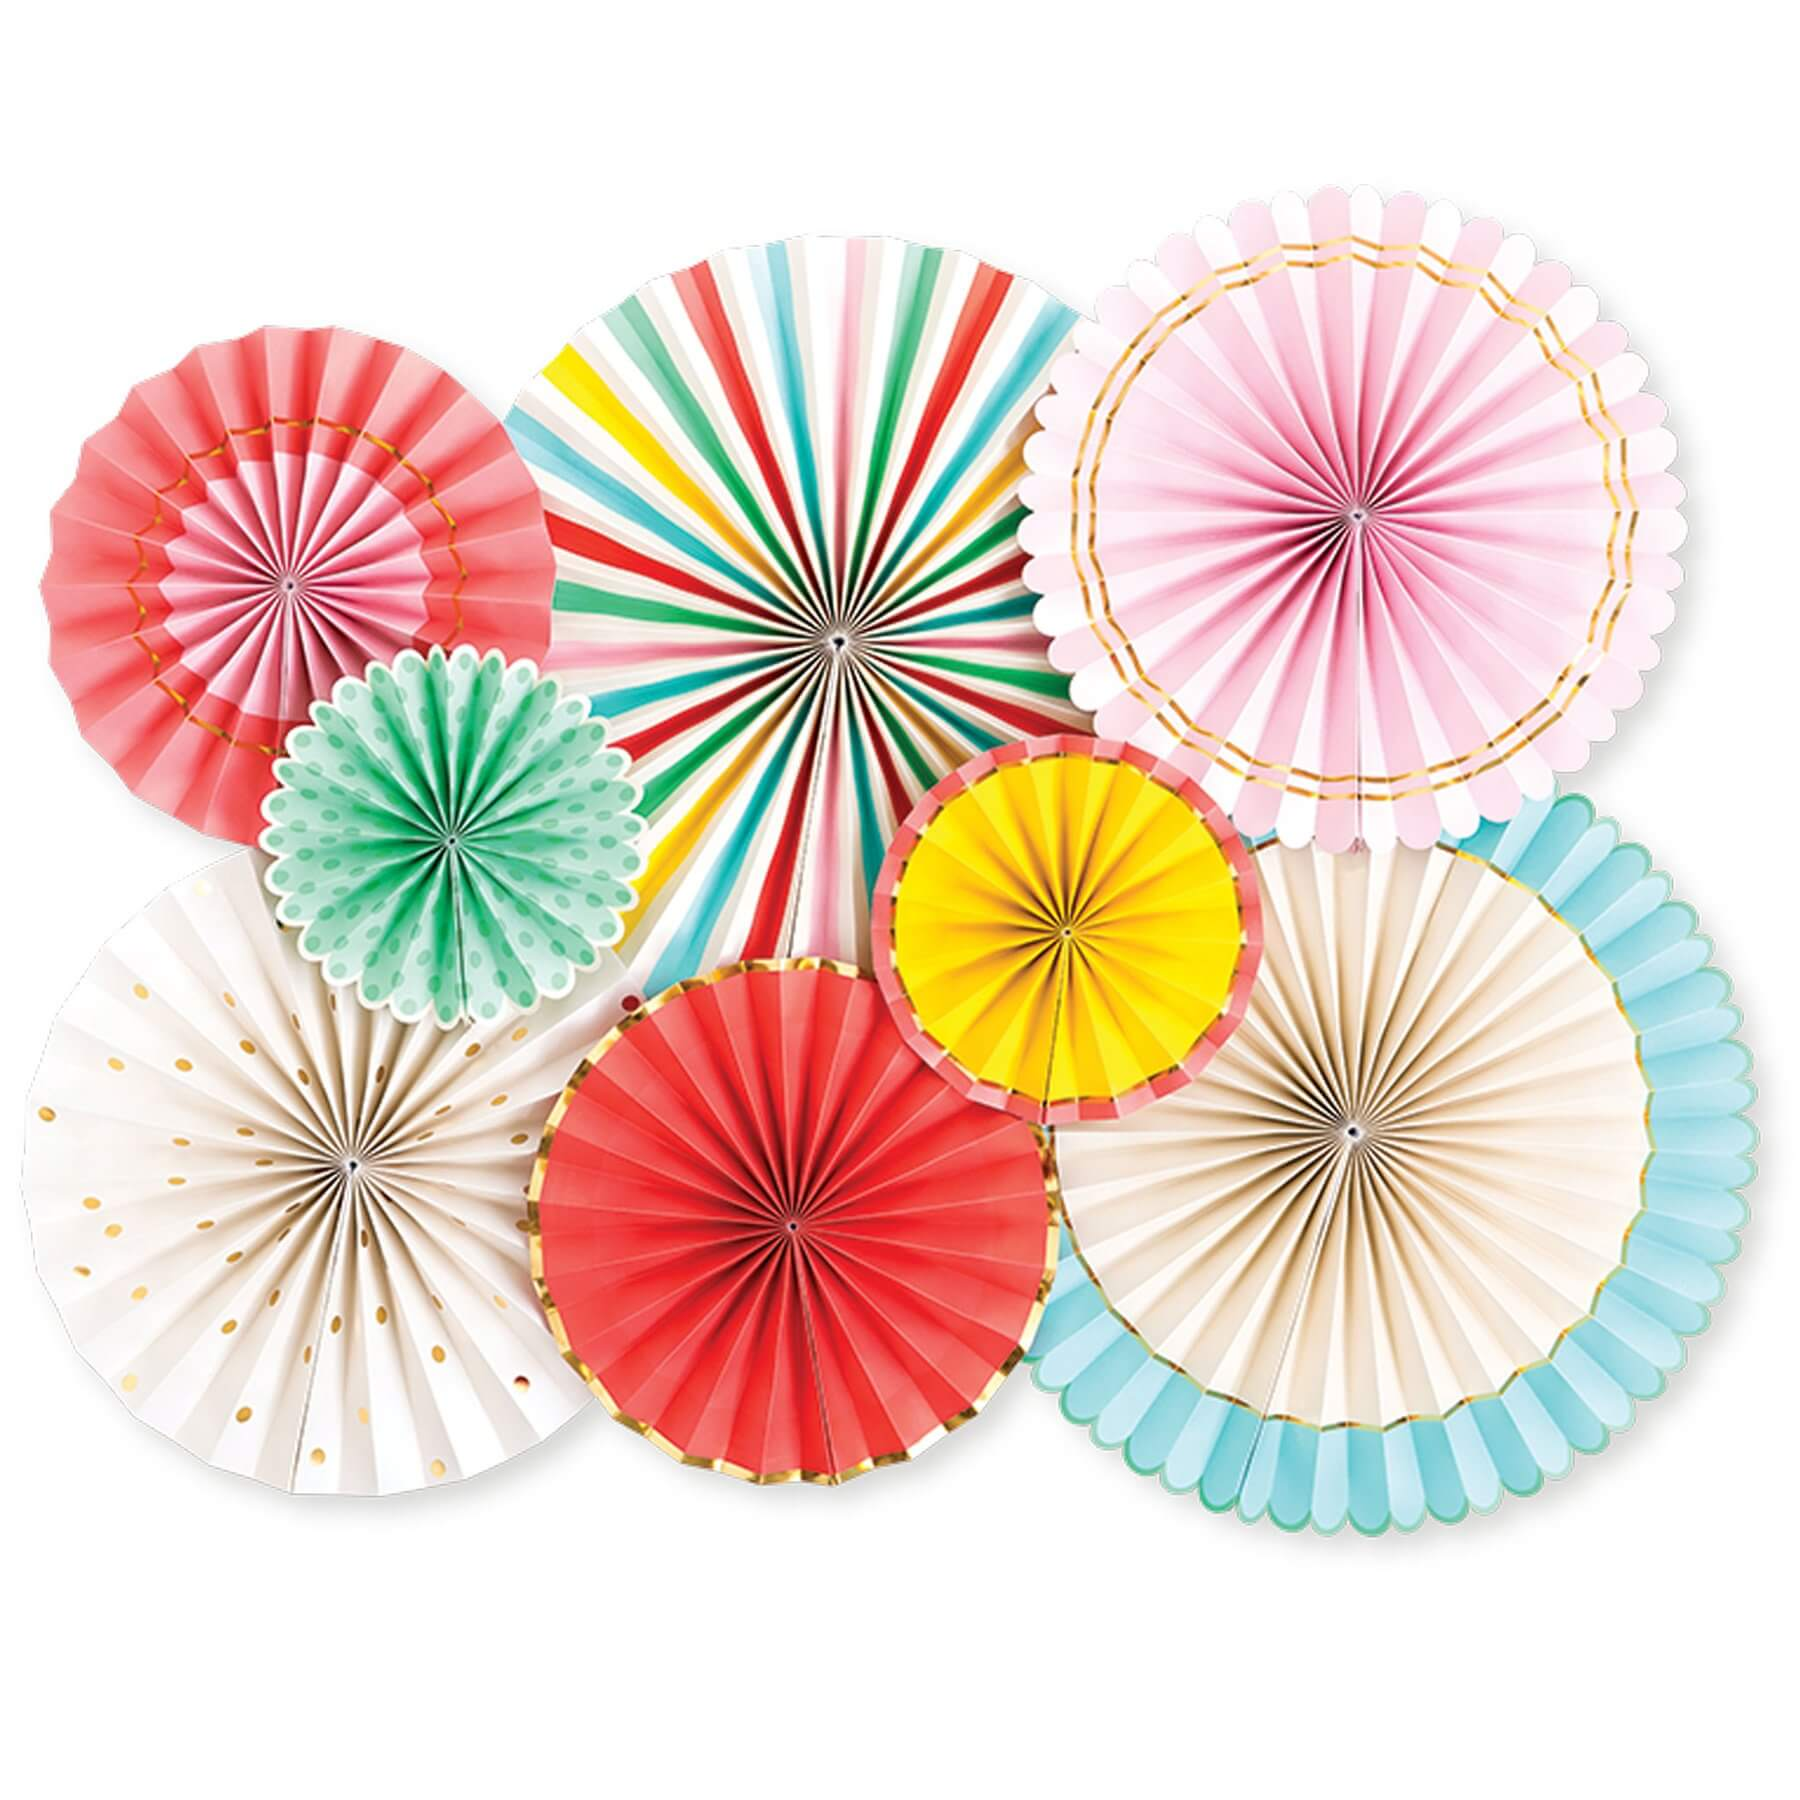 Multi-colored party fan decoration from My Mind's Eye sold by Just Peachy